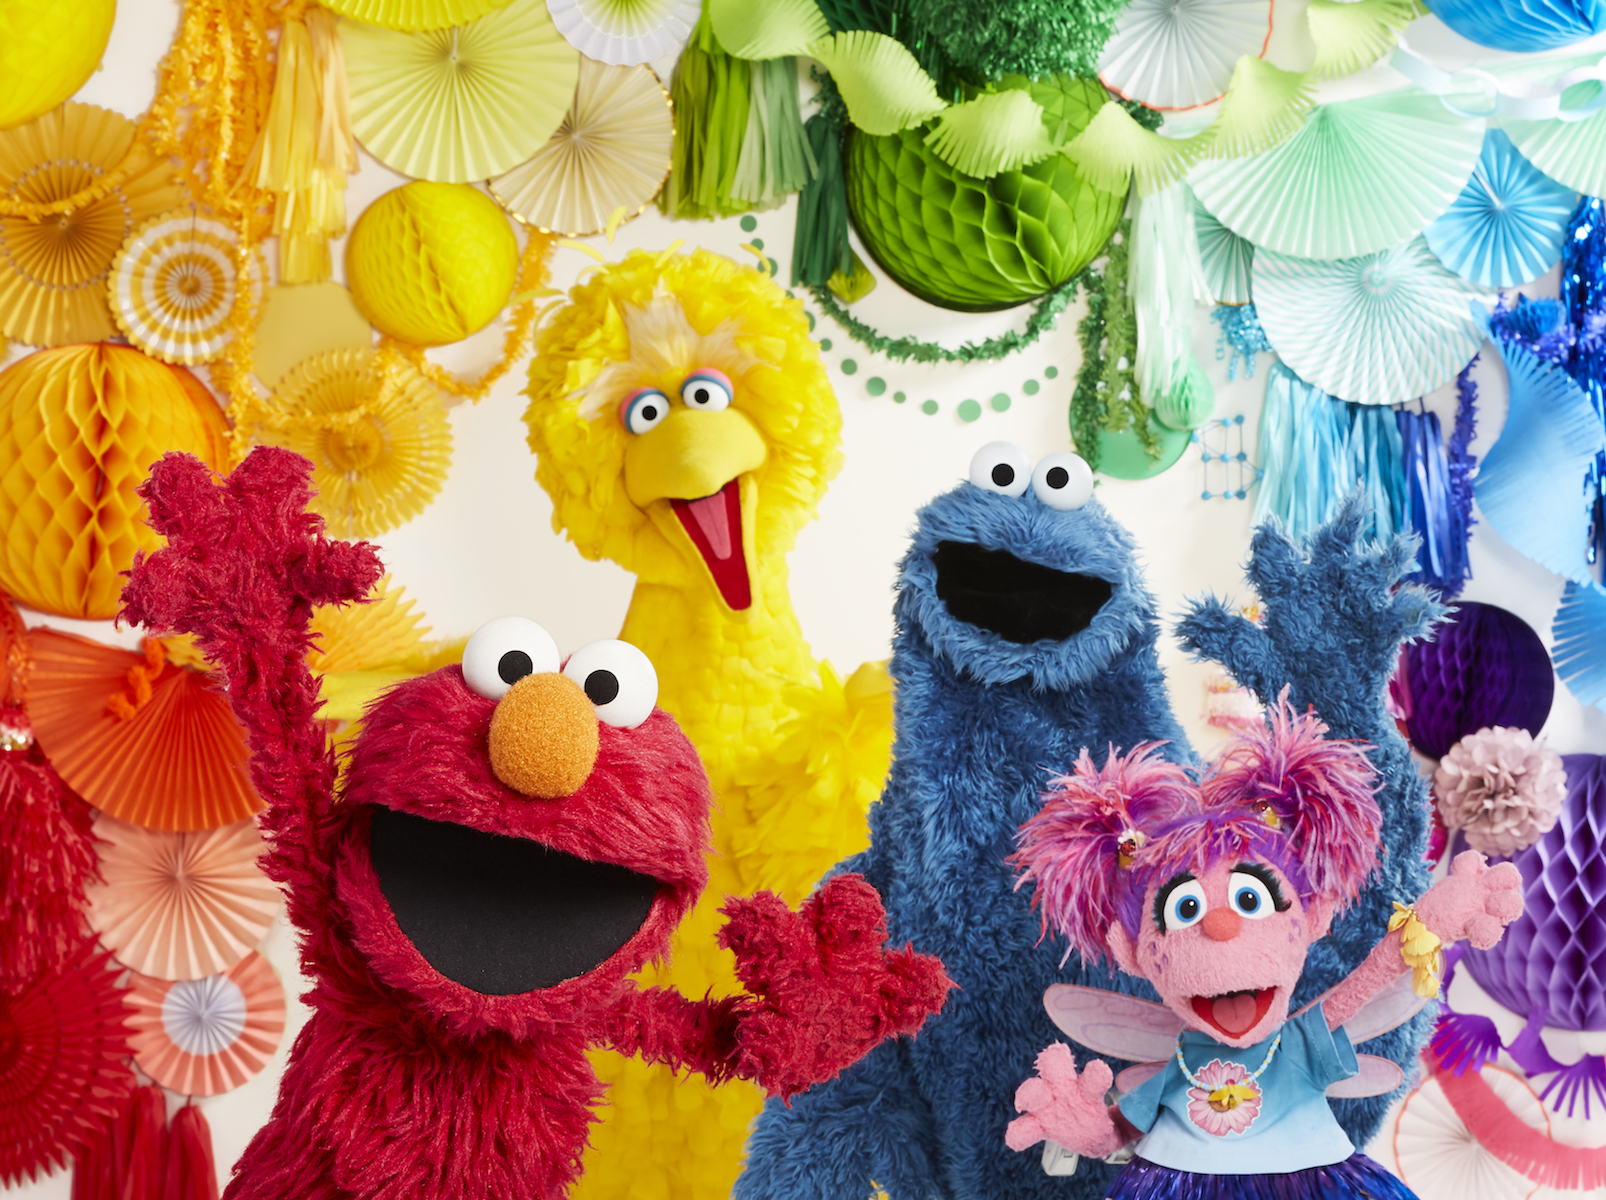 Sesame Street Celebrates 50th Anniversary with Cupcake Collaboration at Baked By Melissa